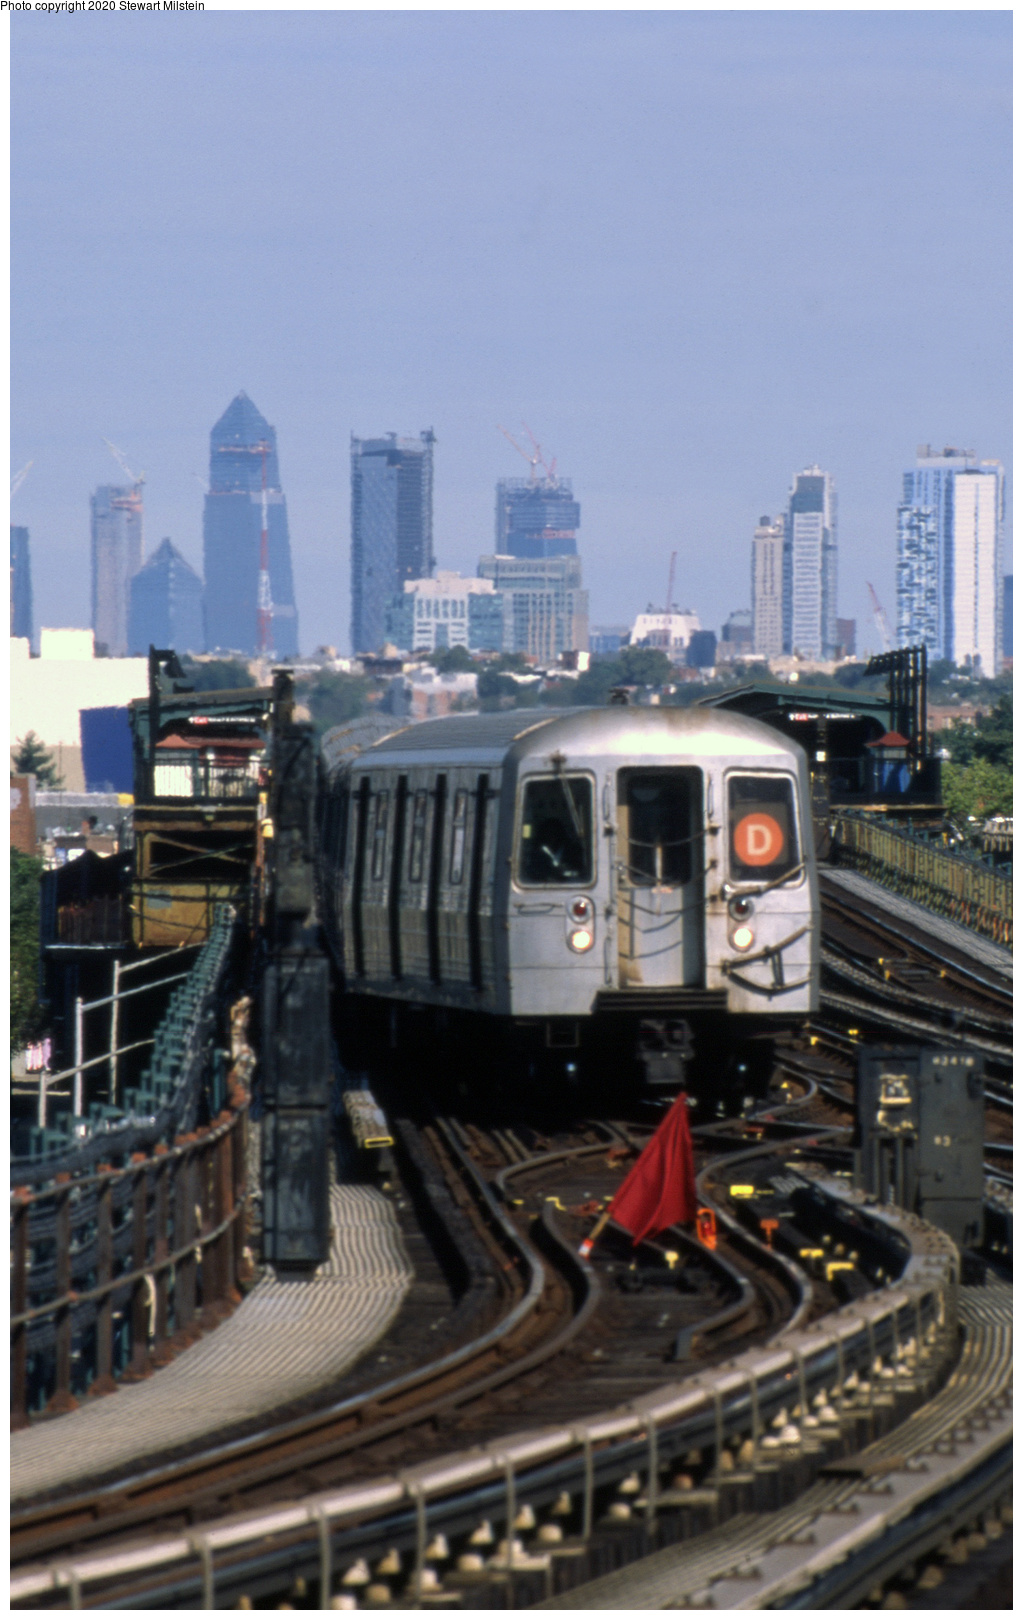 (573k, 1023x1620)<br><b>Country:</b> United States<br><b>City:</b> New York<br><b>System:</b> New York City Transit<br><b>Line:</b> BMT Culver Line<br><b>Location:</b> Kings Highway <br><b>Route:</b> D reroute<br><b>Car:</b> R-68 (Westinghouse-Amrail, 1986-1988)  2608 <br><b>Photo by:</b> Stewart Milstein<br><b>Date:</b> 9/30/2018<br><b>Viewed (this week/total):</b> 22 / 68